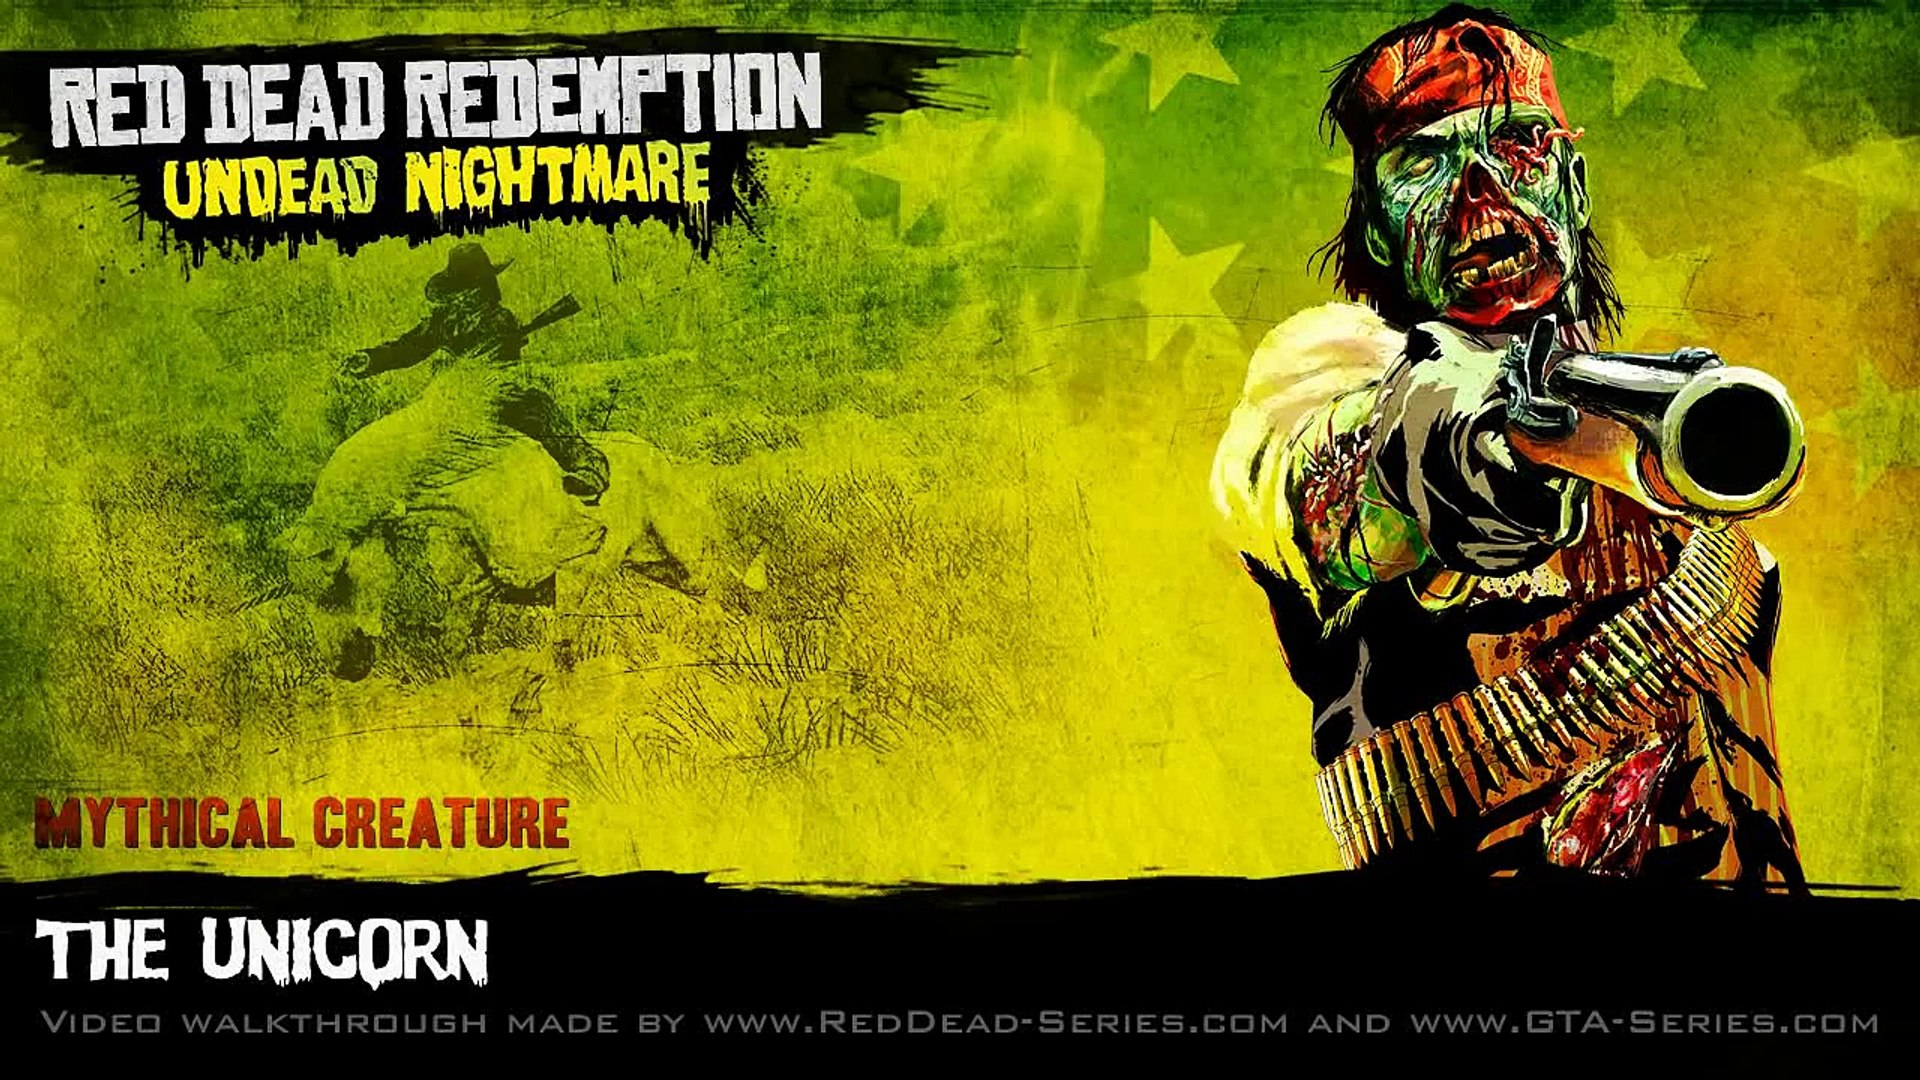 Red Dead Redemption Undead Nightmare The Unicorn Video